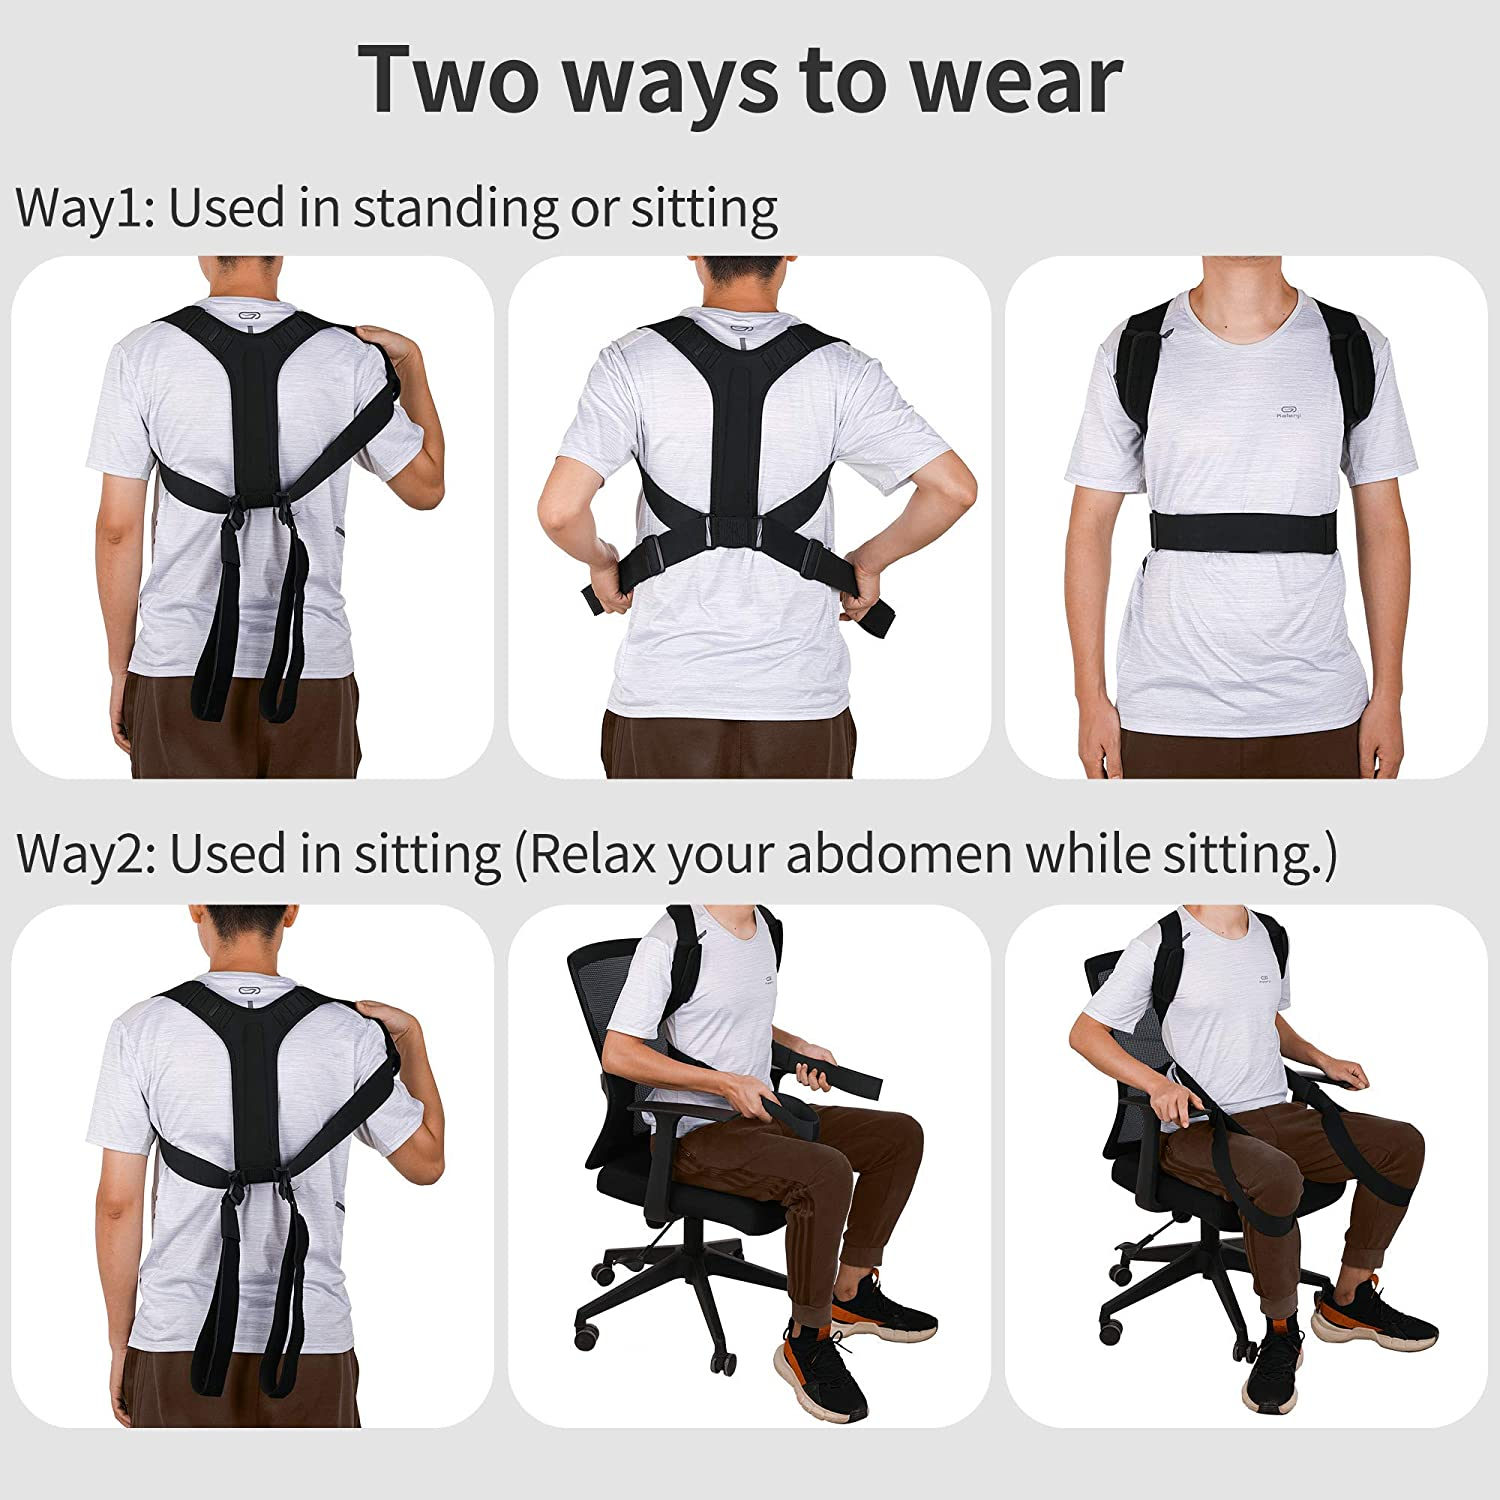 Posture Corrector,Body Wellness Posture Corrector for Women Men and Kids,Back Brace With Two Adjustable Wearing ways, Breathable Posture Brace For Upper Back, Shoulder and Neck Pain Relif(M-XXL): Health & Personal Care